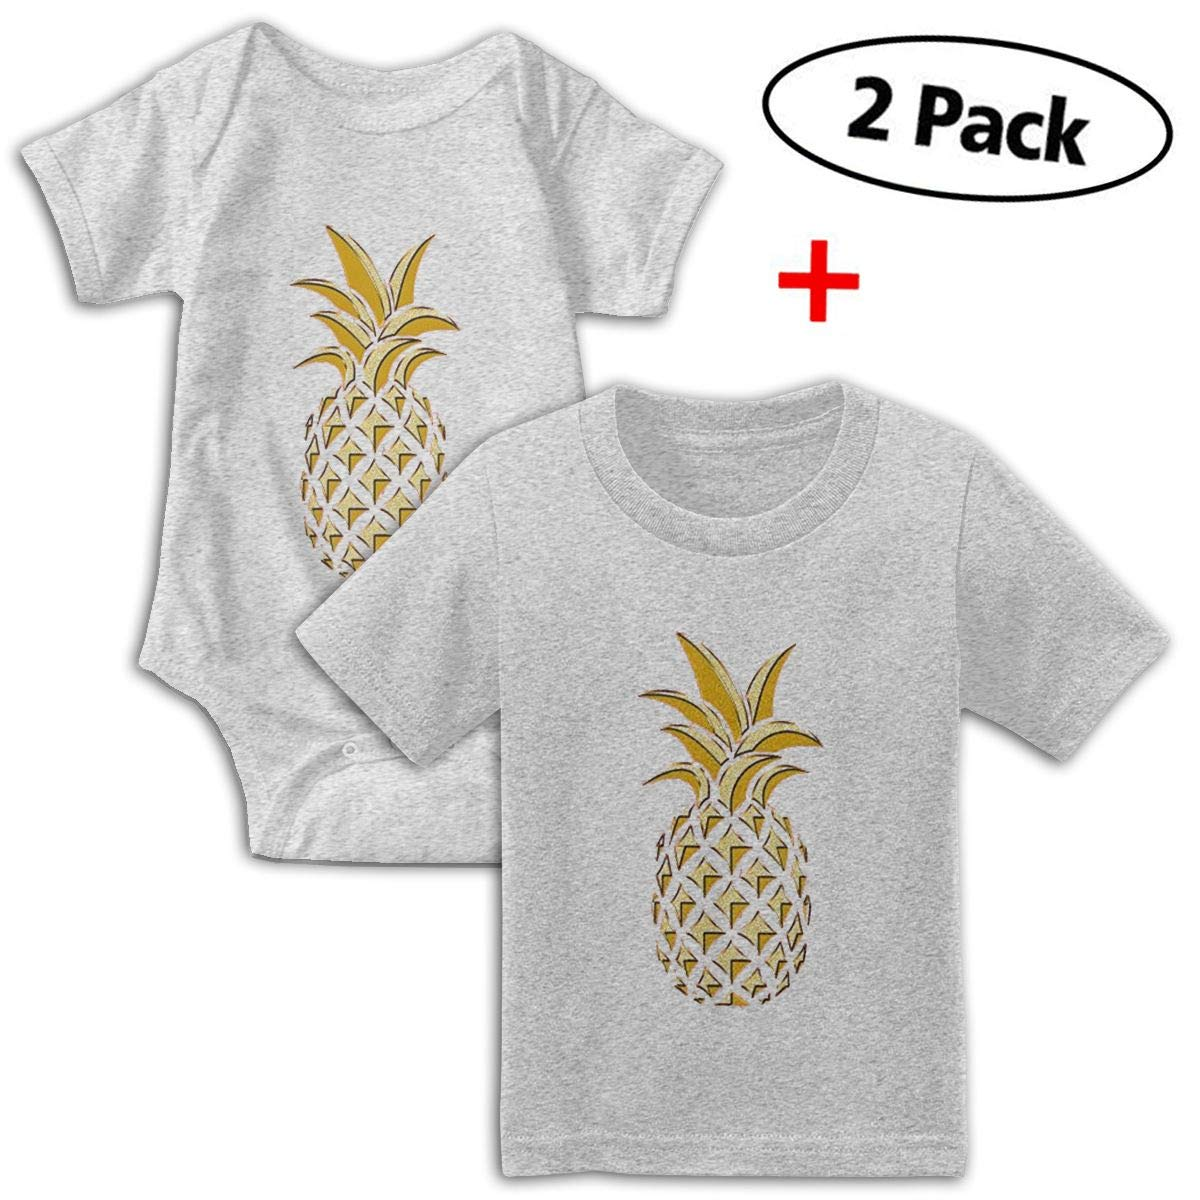 KAYERDELLE Dancing Pineapple Babys Boys /& Girls Short Sleeve Jumpsuit Outfits and Tshirt